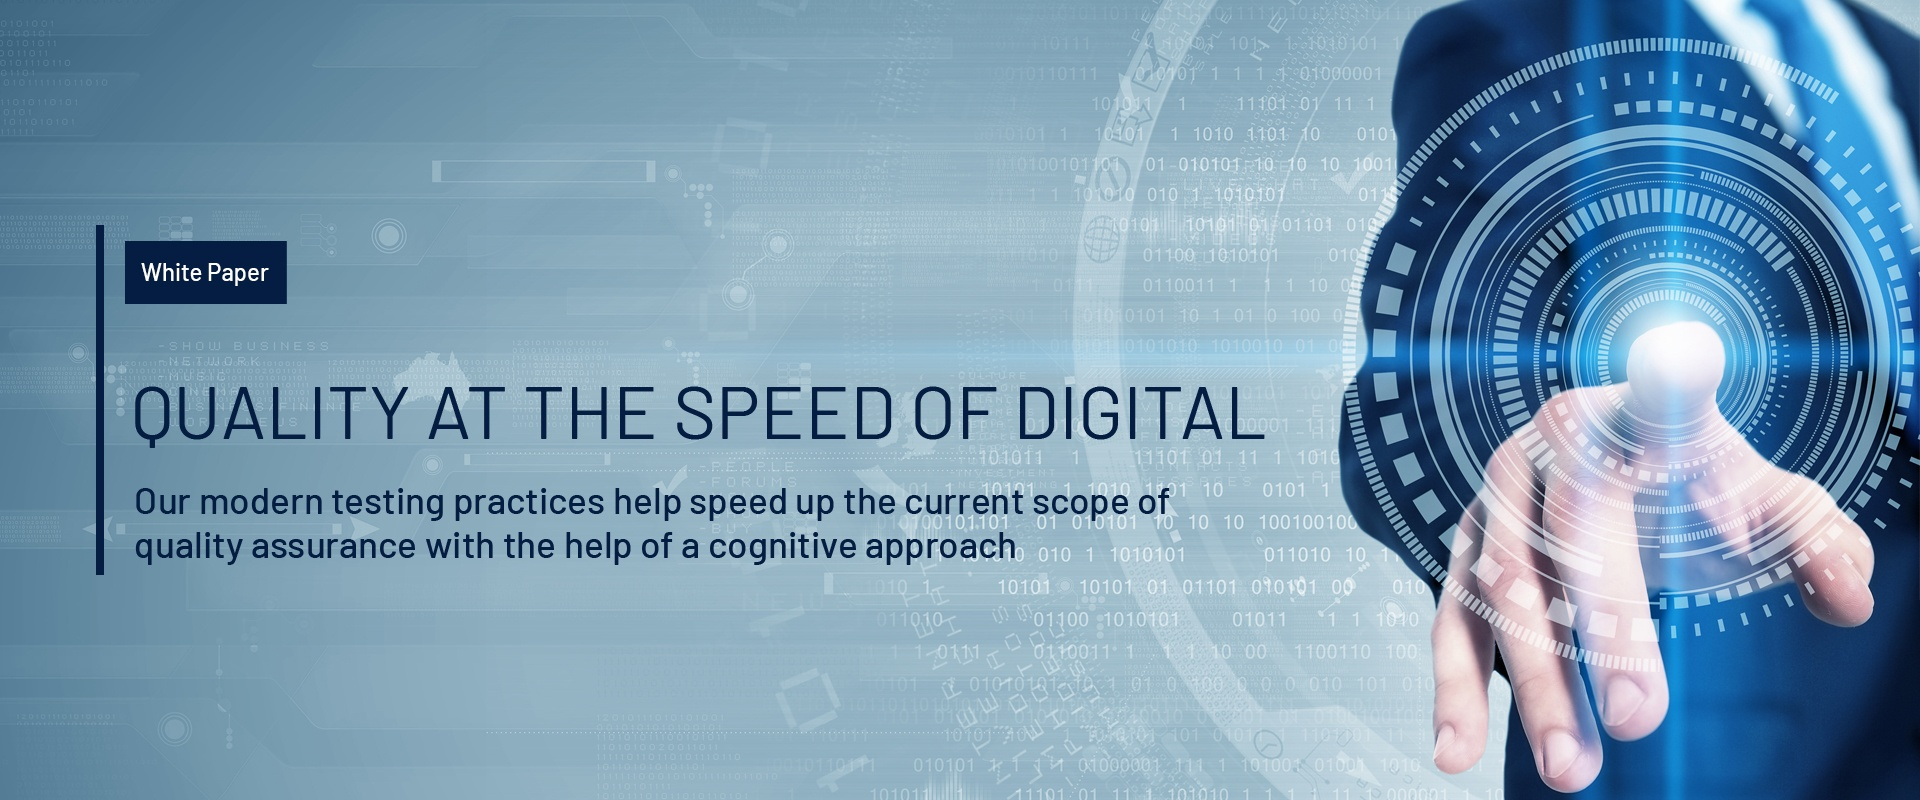 Quality at the speed of digital